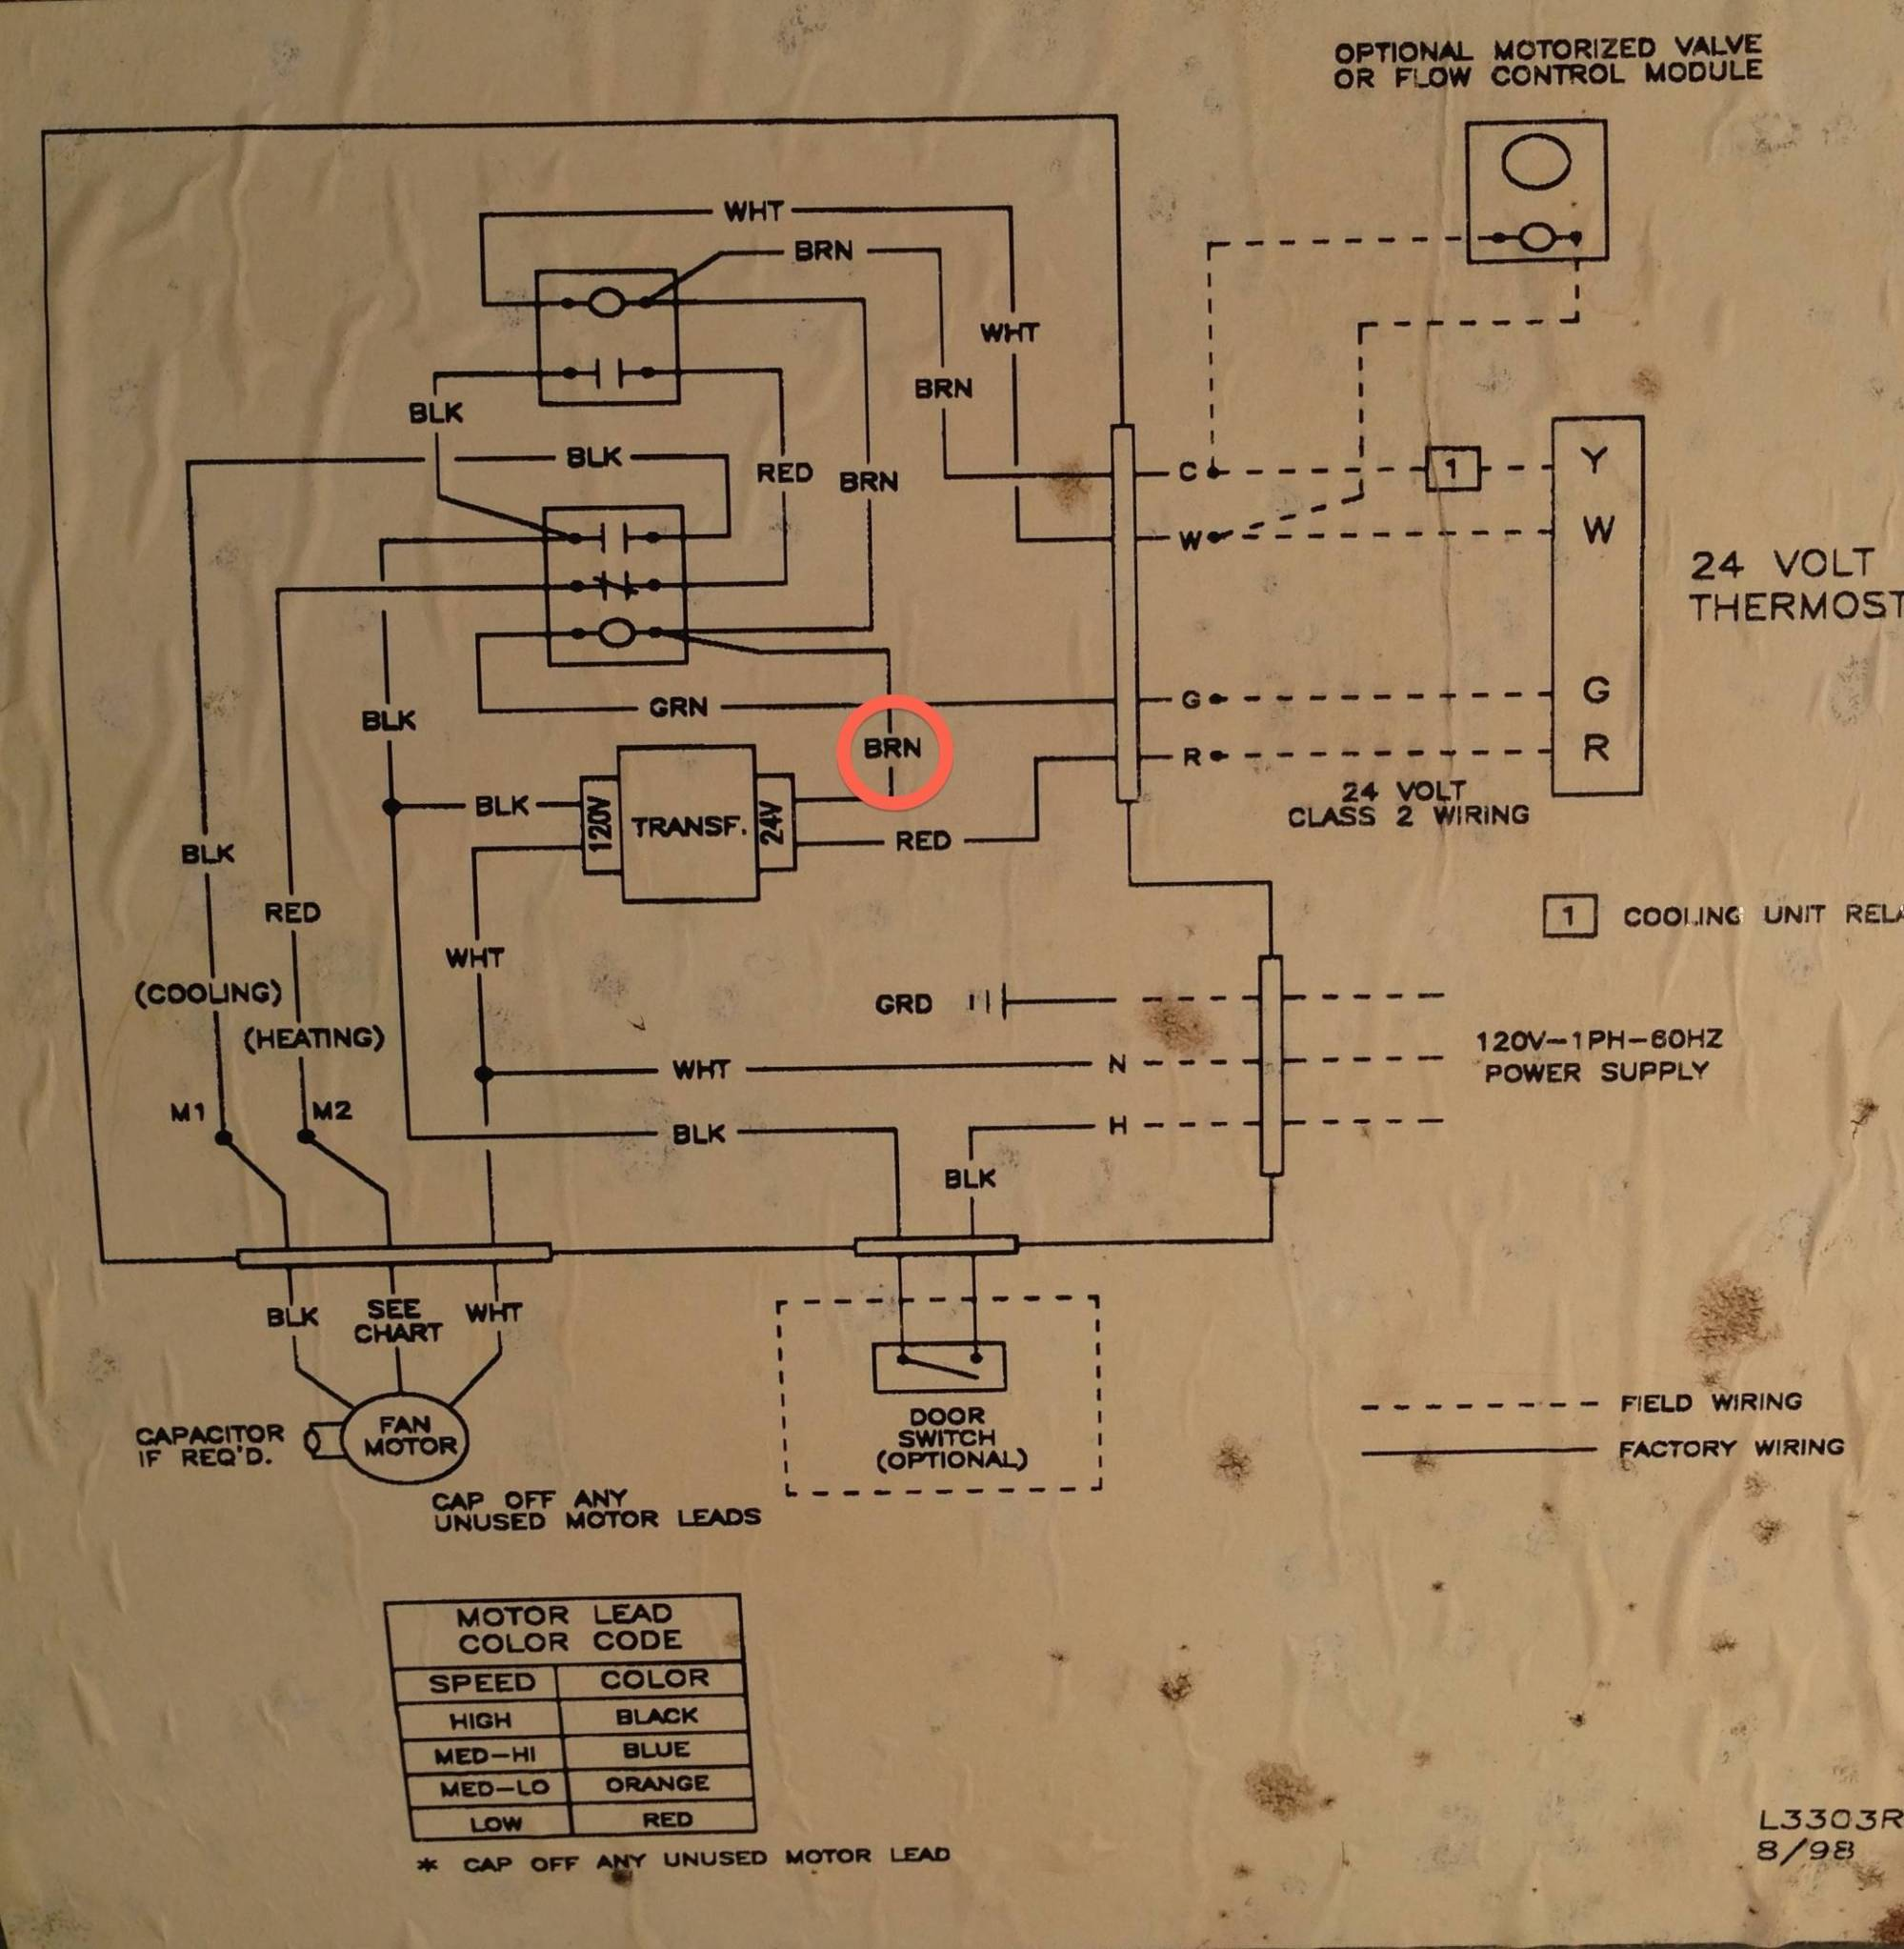 hight resolution of thermostat where to add c wire on this air handler home wiring diagram honeywell rth2300b share the knownledge